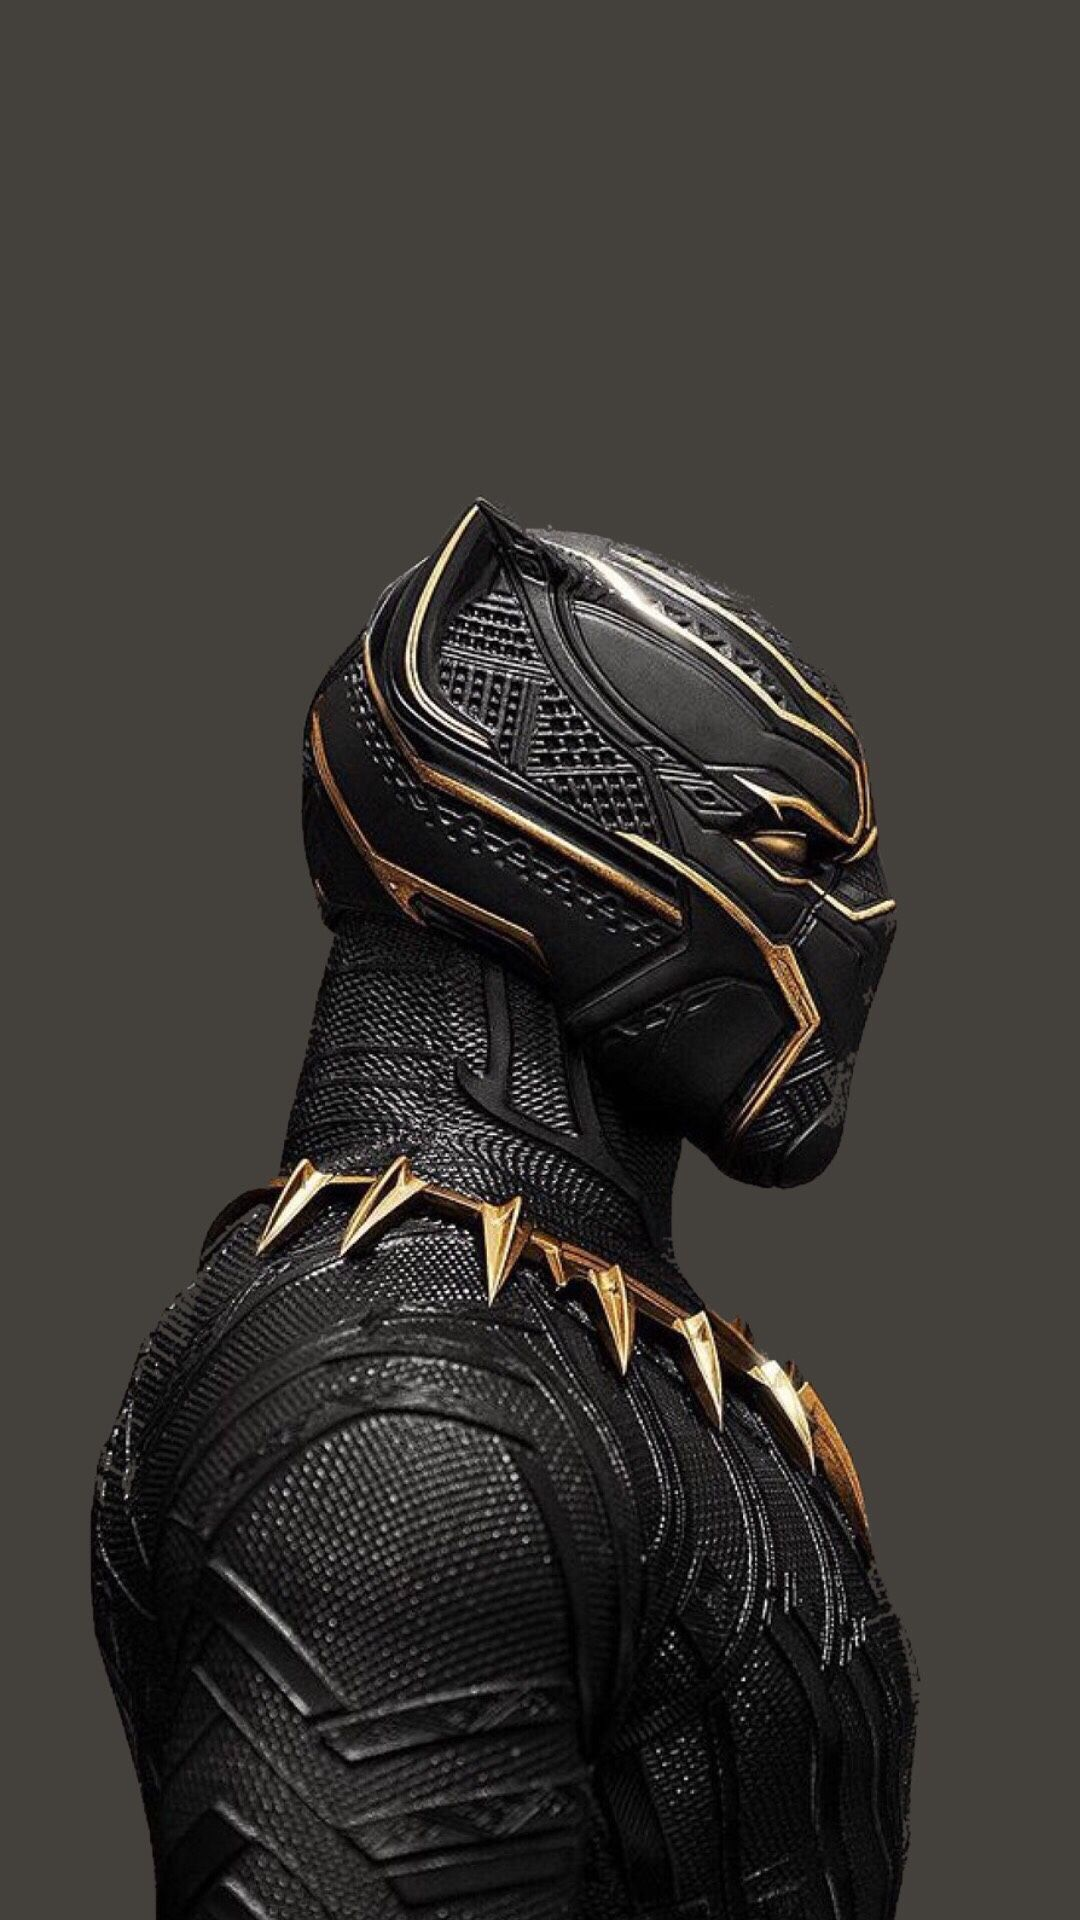 The Iphone X Wallpaper Thread Page 19 Iphone Ipad Ipod Forums At Imore Com Black Panther Art Black Panther Marvel Panther Art